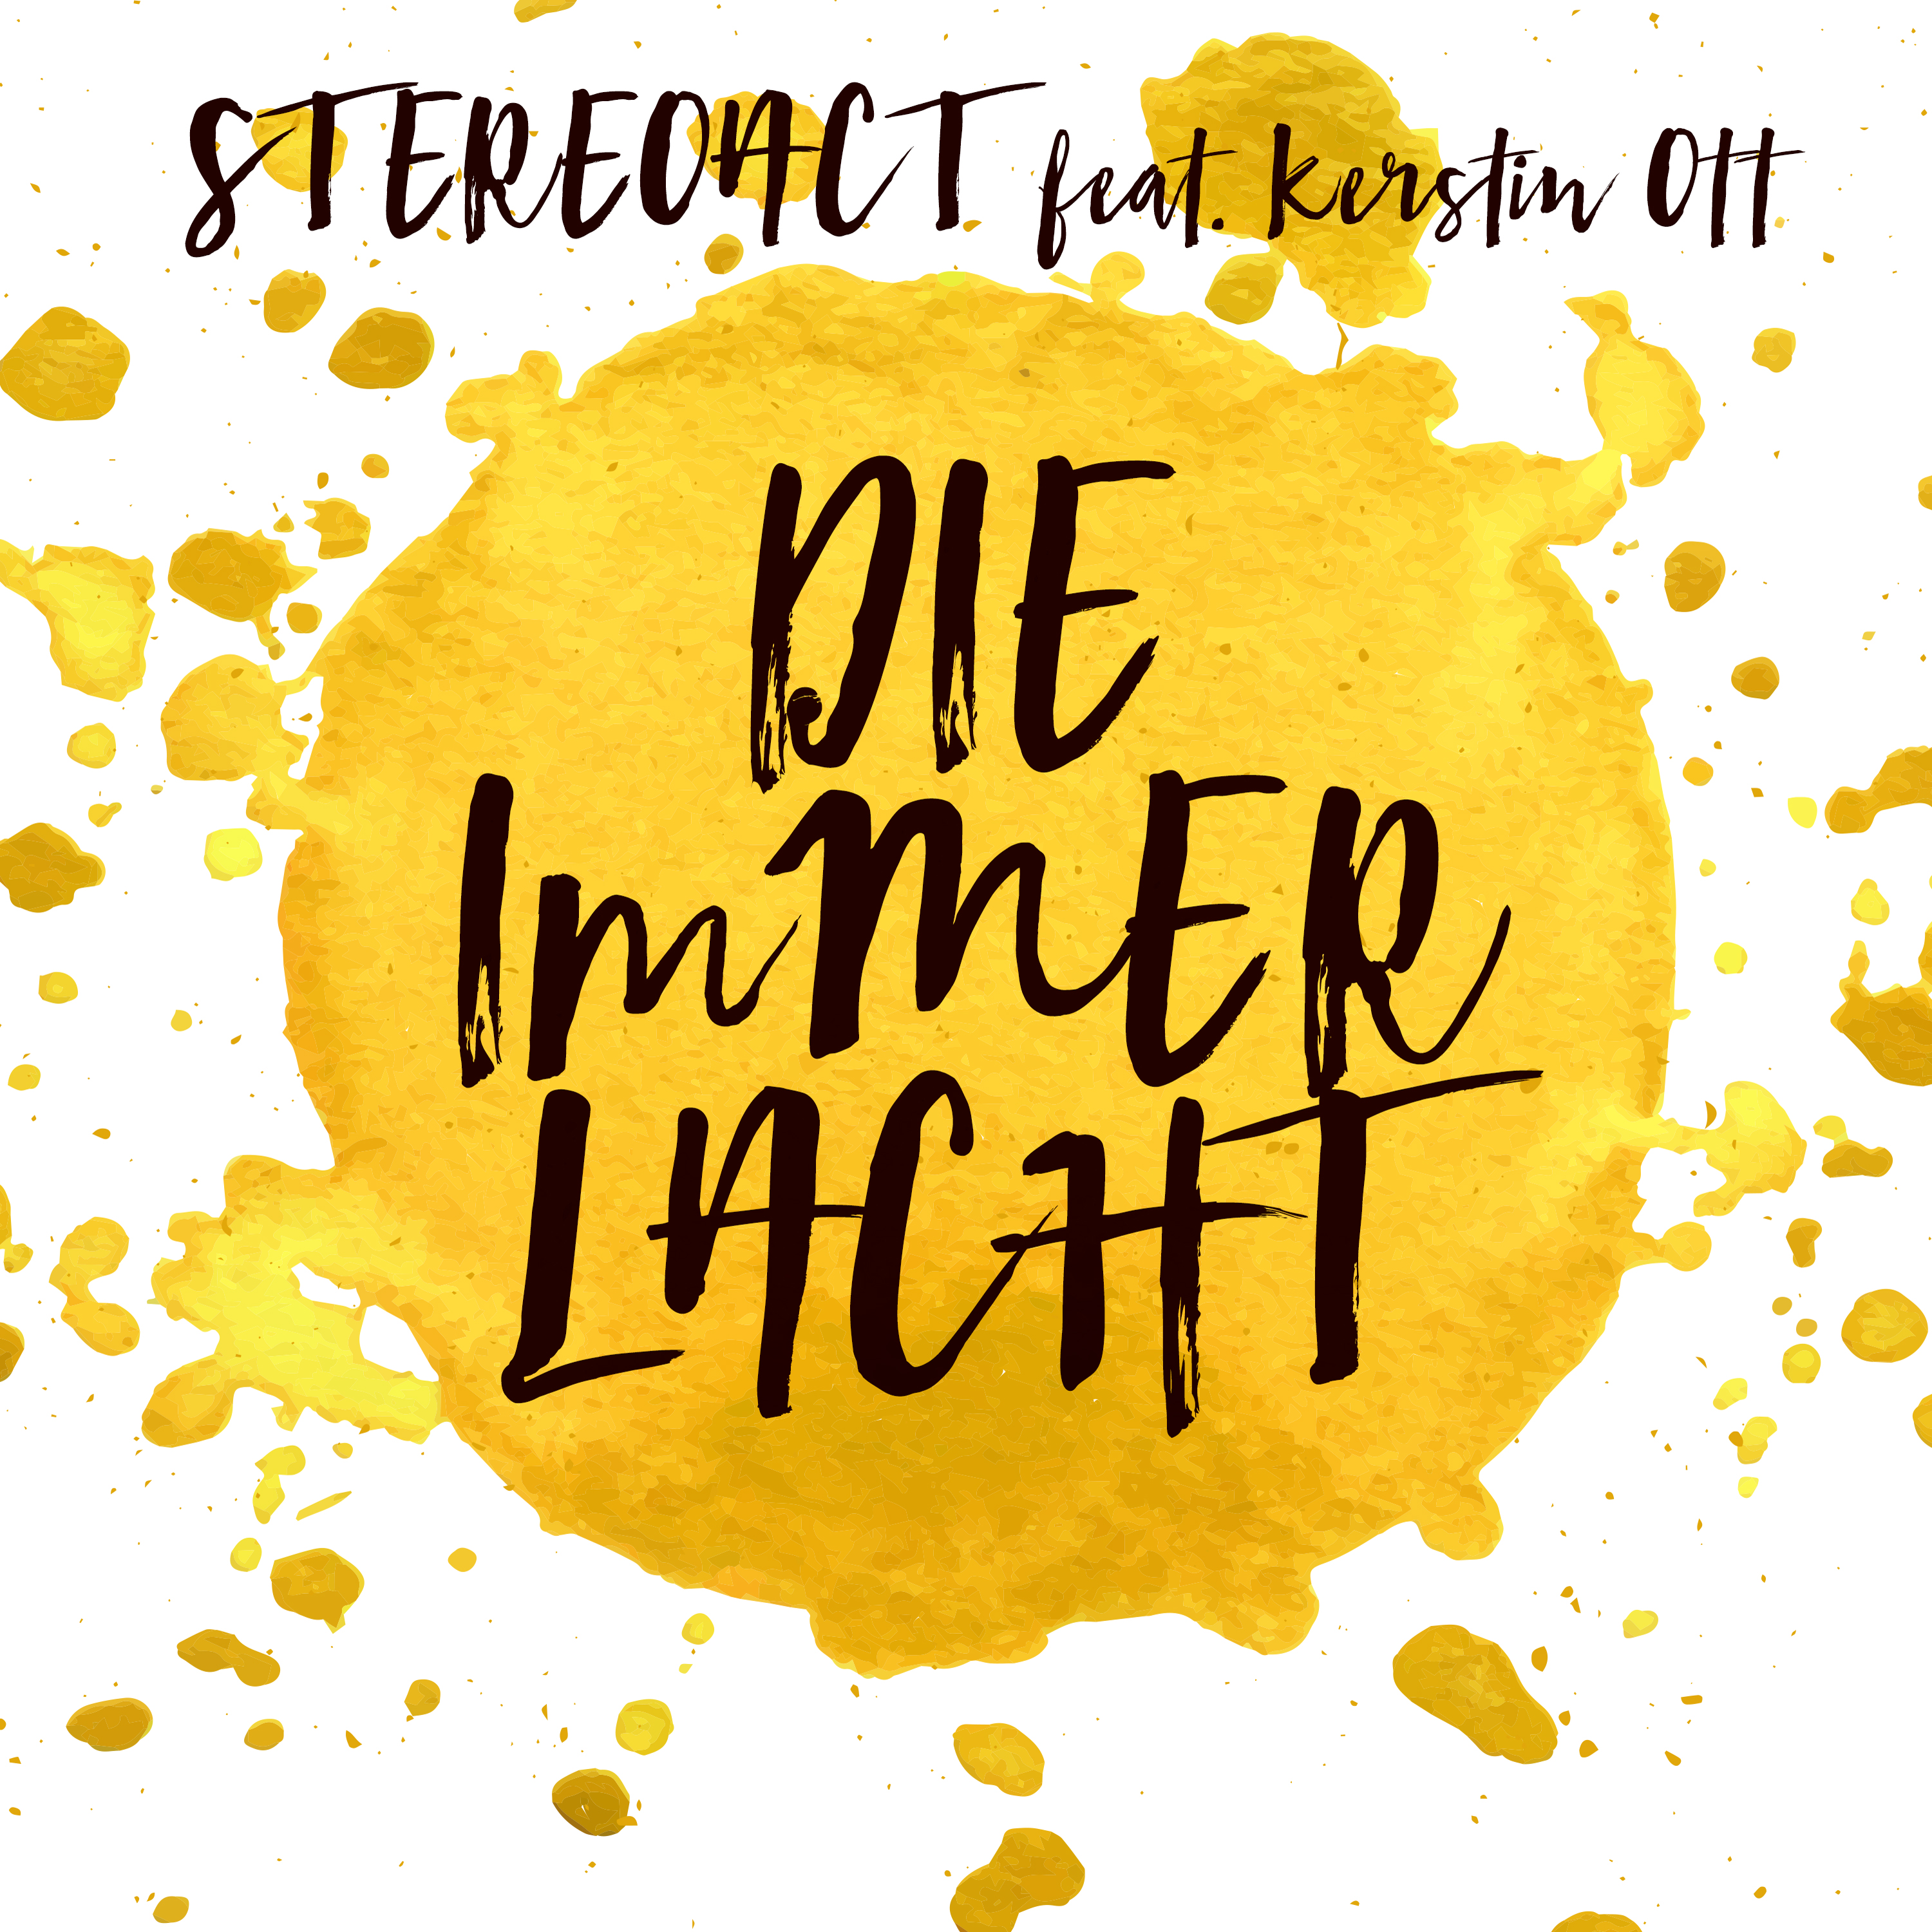 Cover: Die immer lacht, Stereoact feat. Kerstin Ott